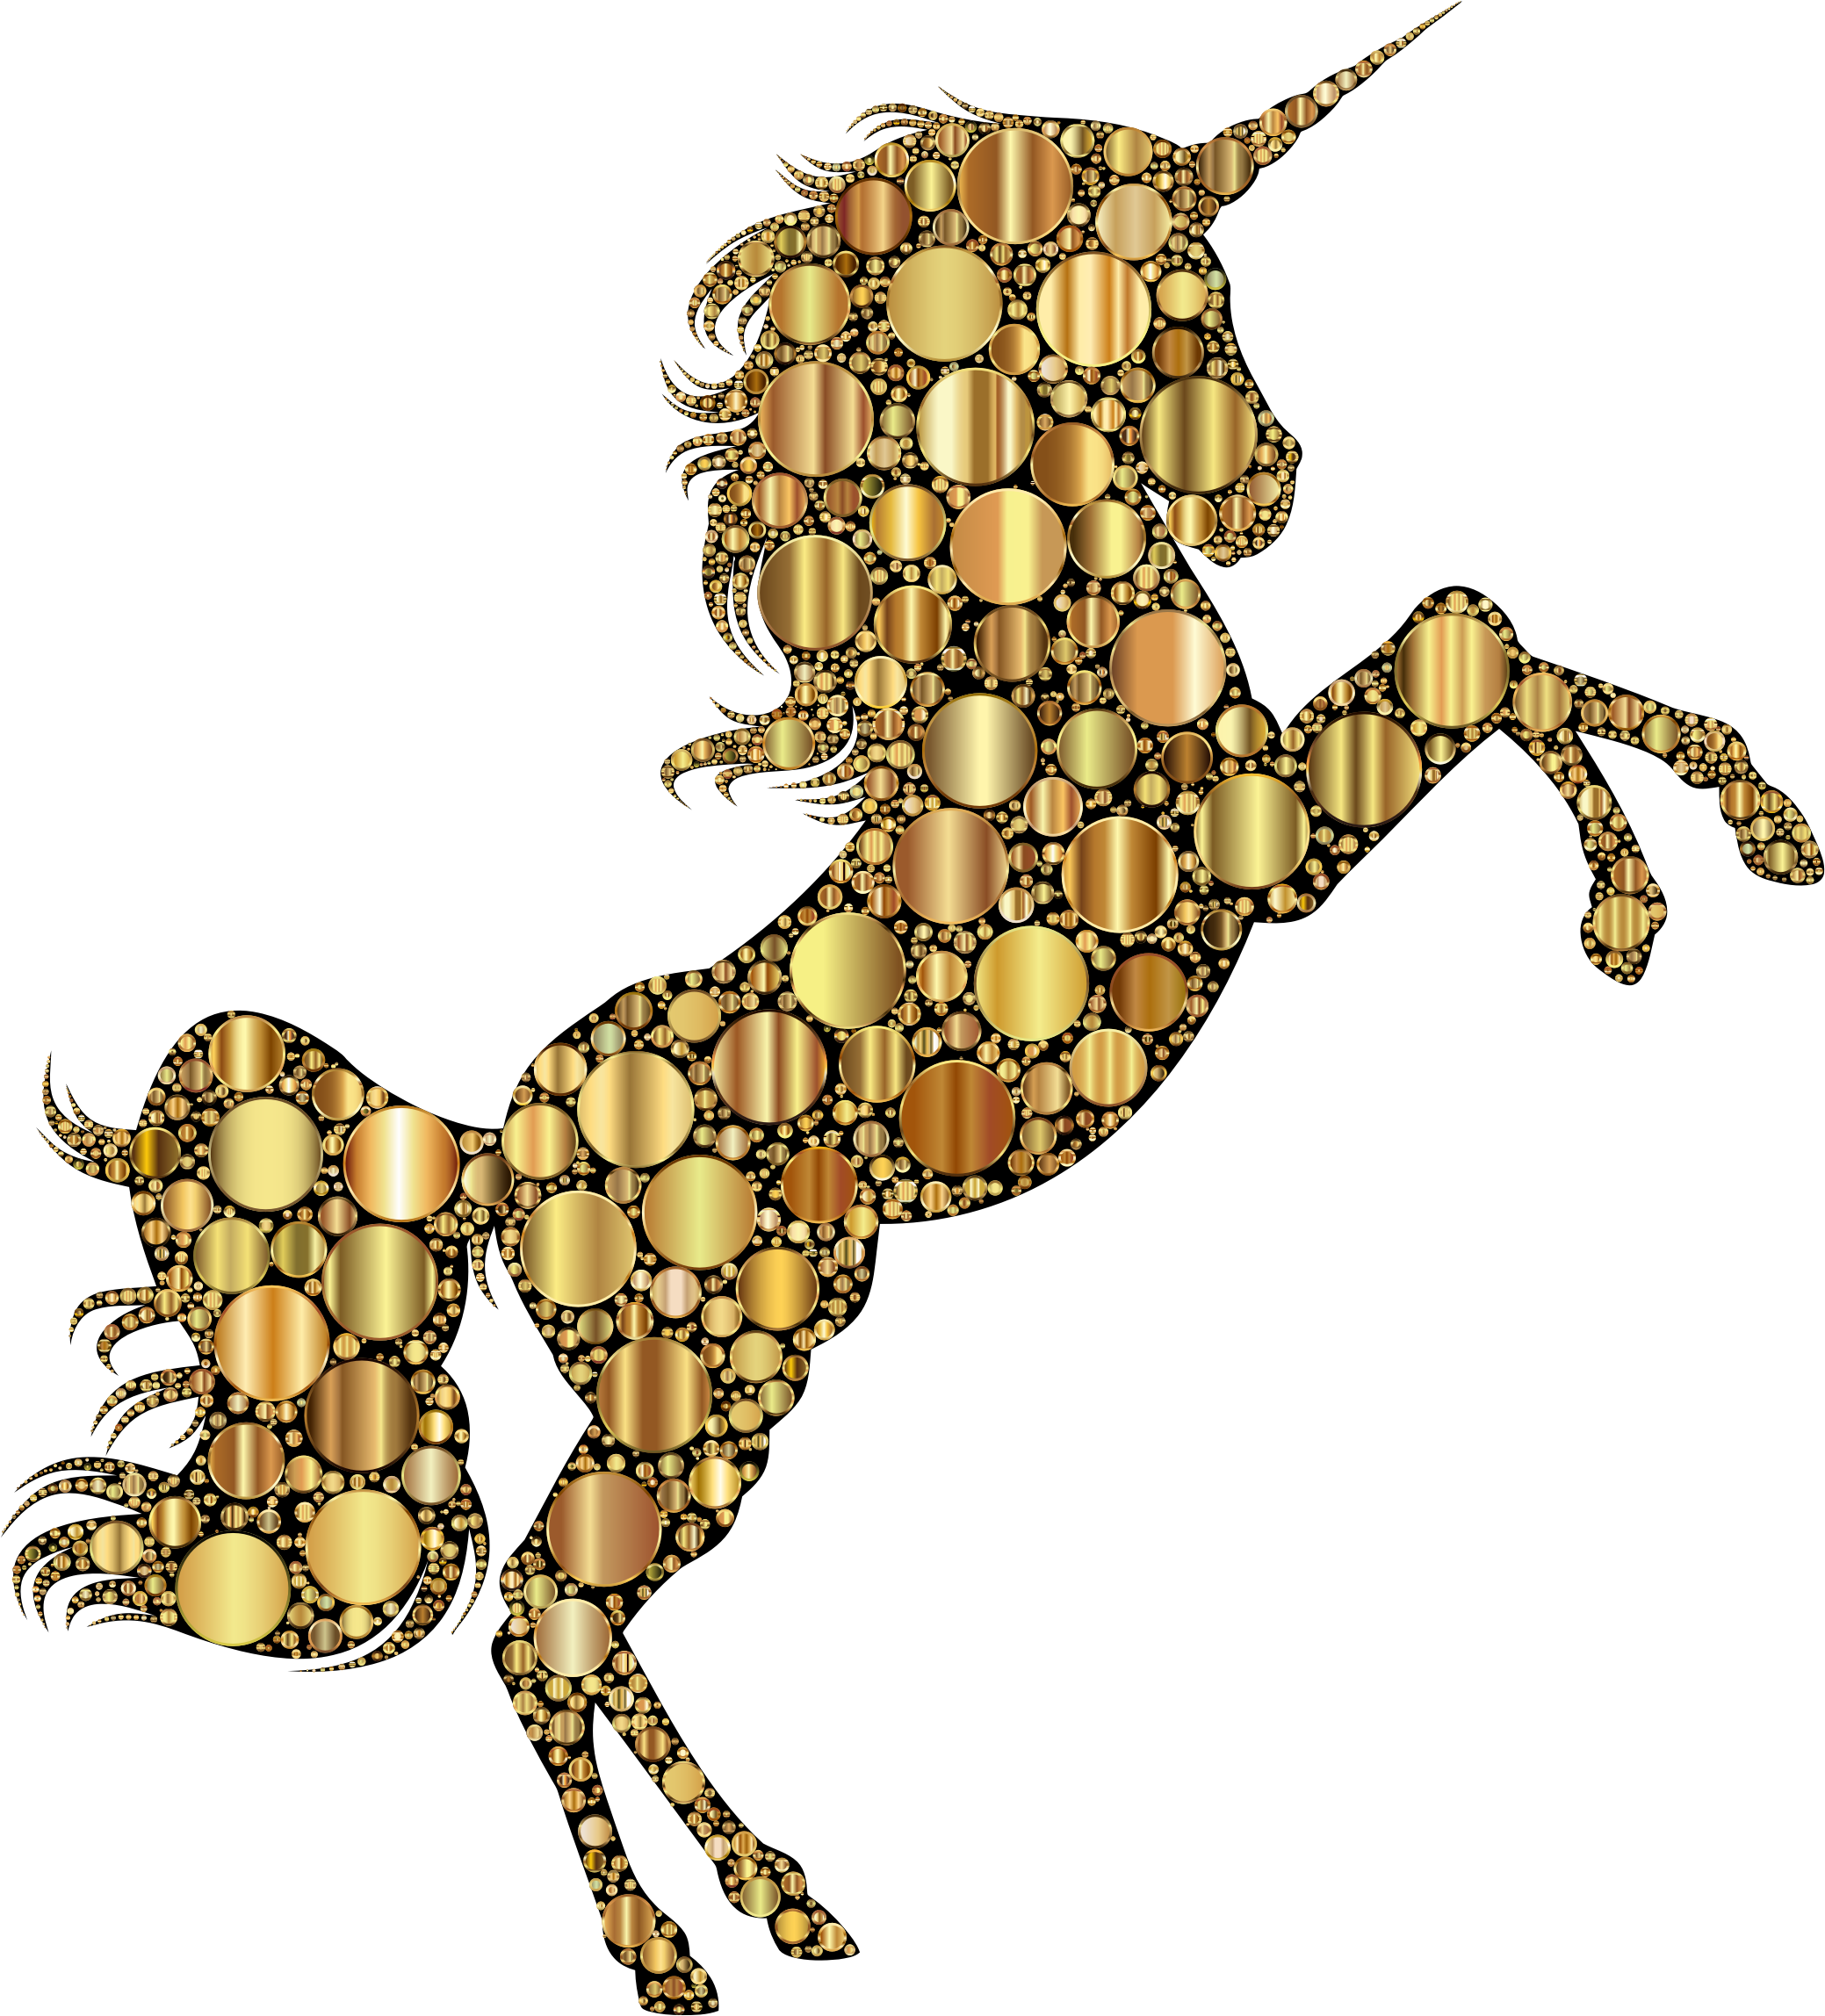 Gold Unicorn Silhouette 2 Circles 2 by GDJ